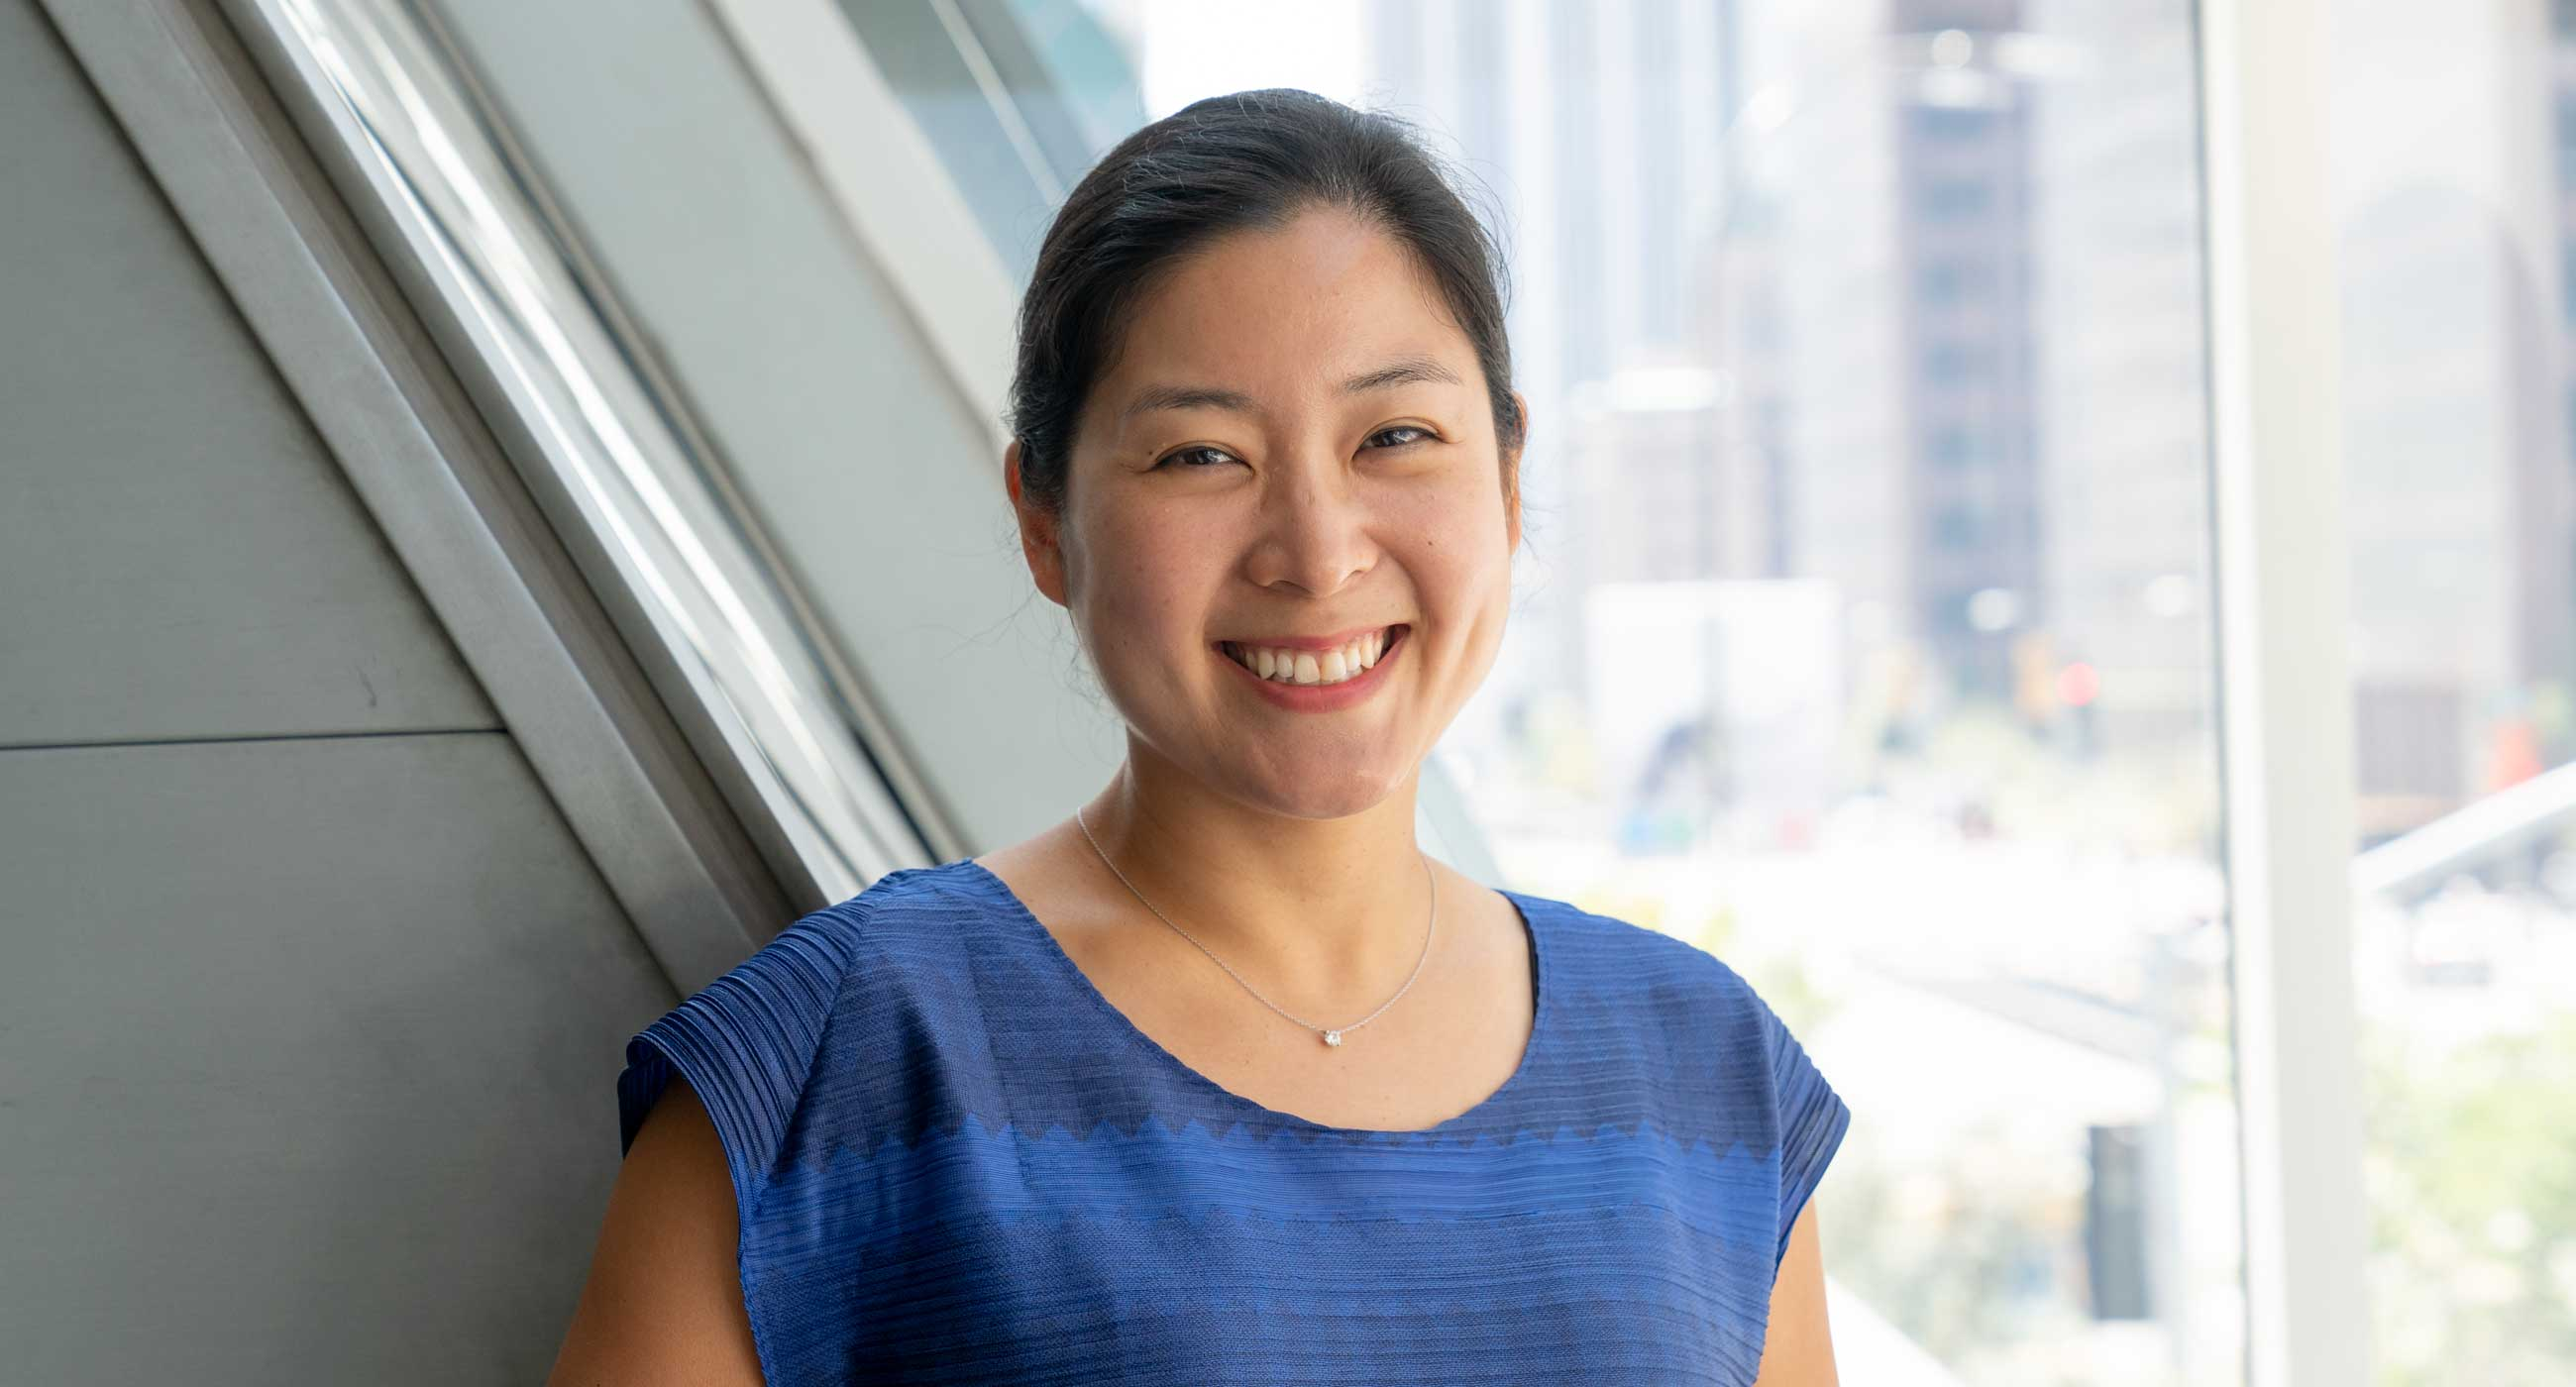 Clara Yang smiling in front of a window.